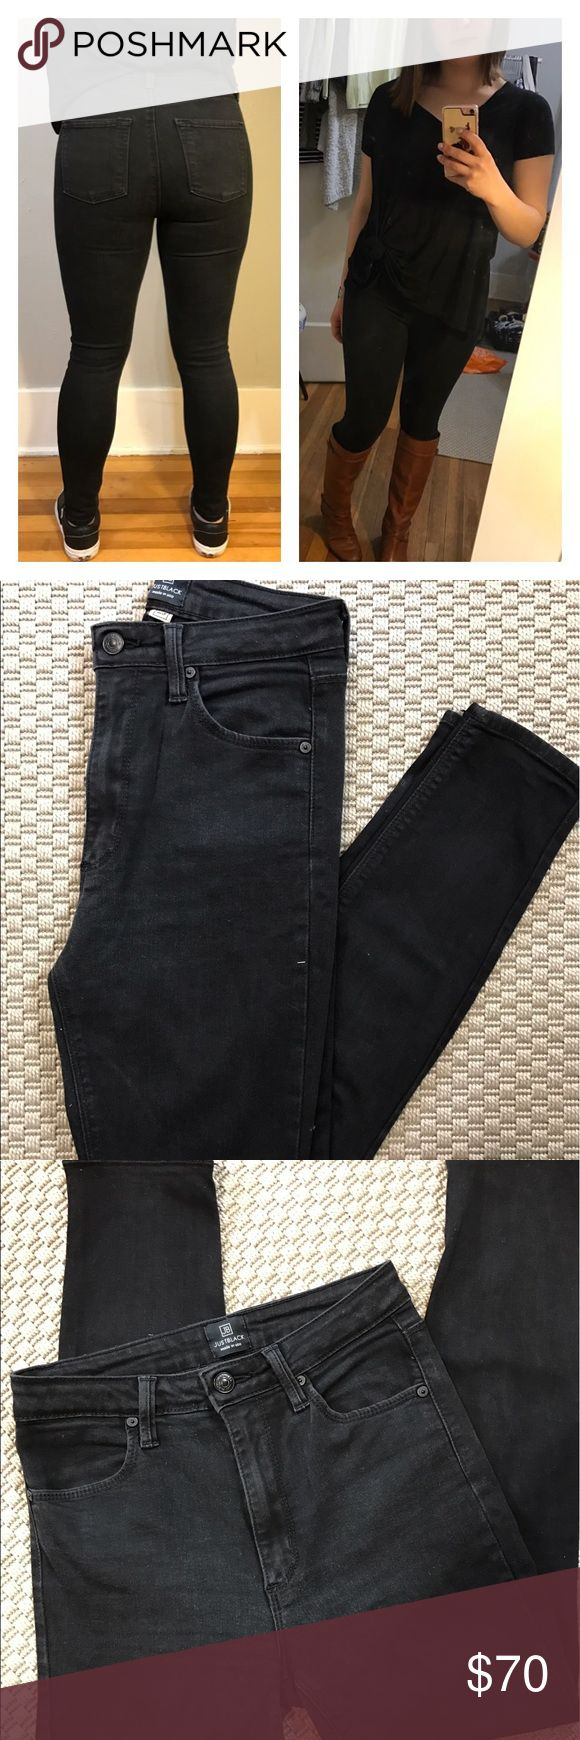 Just Black high waisted black jeans Just Black high waisted black jeans. These are amazing! I'm letting them all of my favorite pants that are Just Black go because I'm needing larger sizes. They are my absolute favorite and fit amazingly well! Please let me know if you have any questions and feel free to make me a reasonable offer. Thanks! Just Black Jeans Skinny